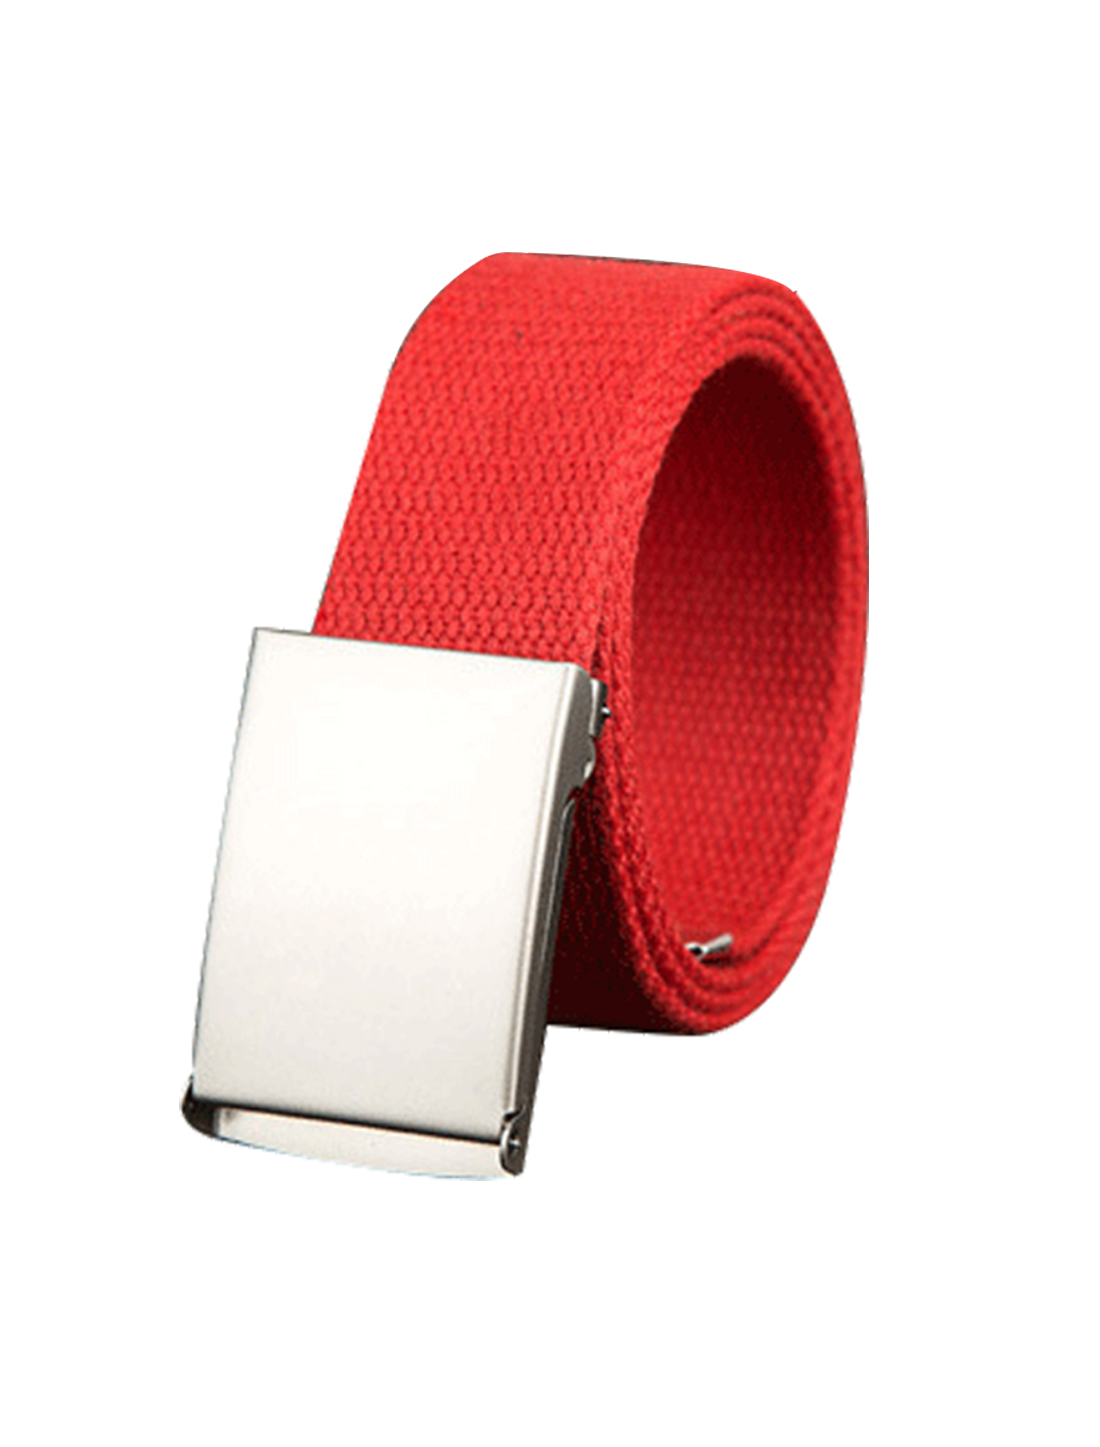 "Unisex Canvas No Hole Slide Metal Buckle Waist Belt Width 1 1/2"" Red"